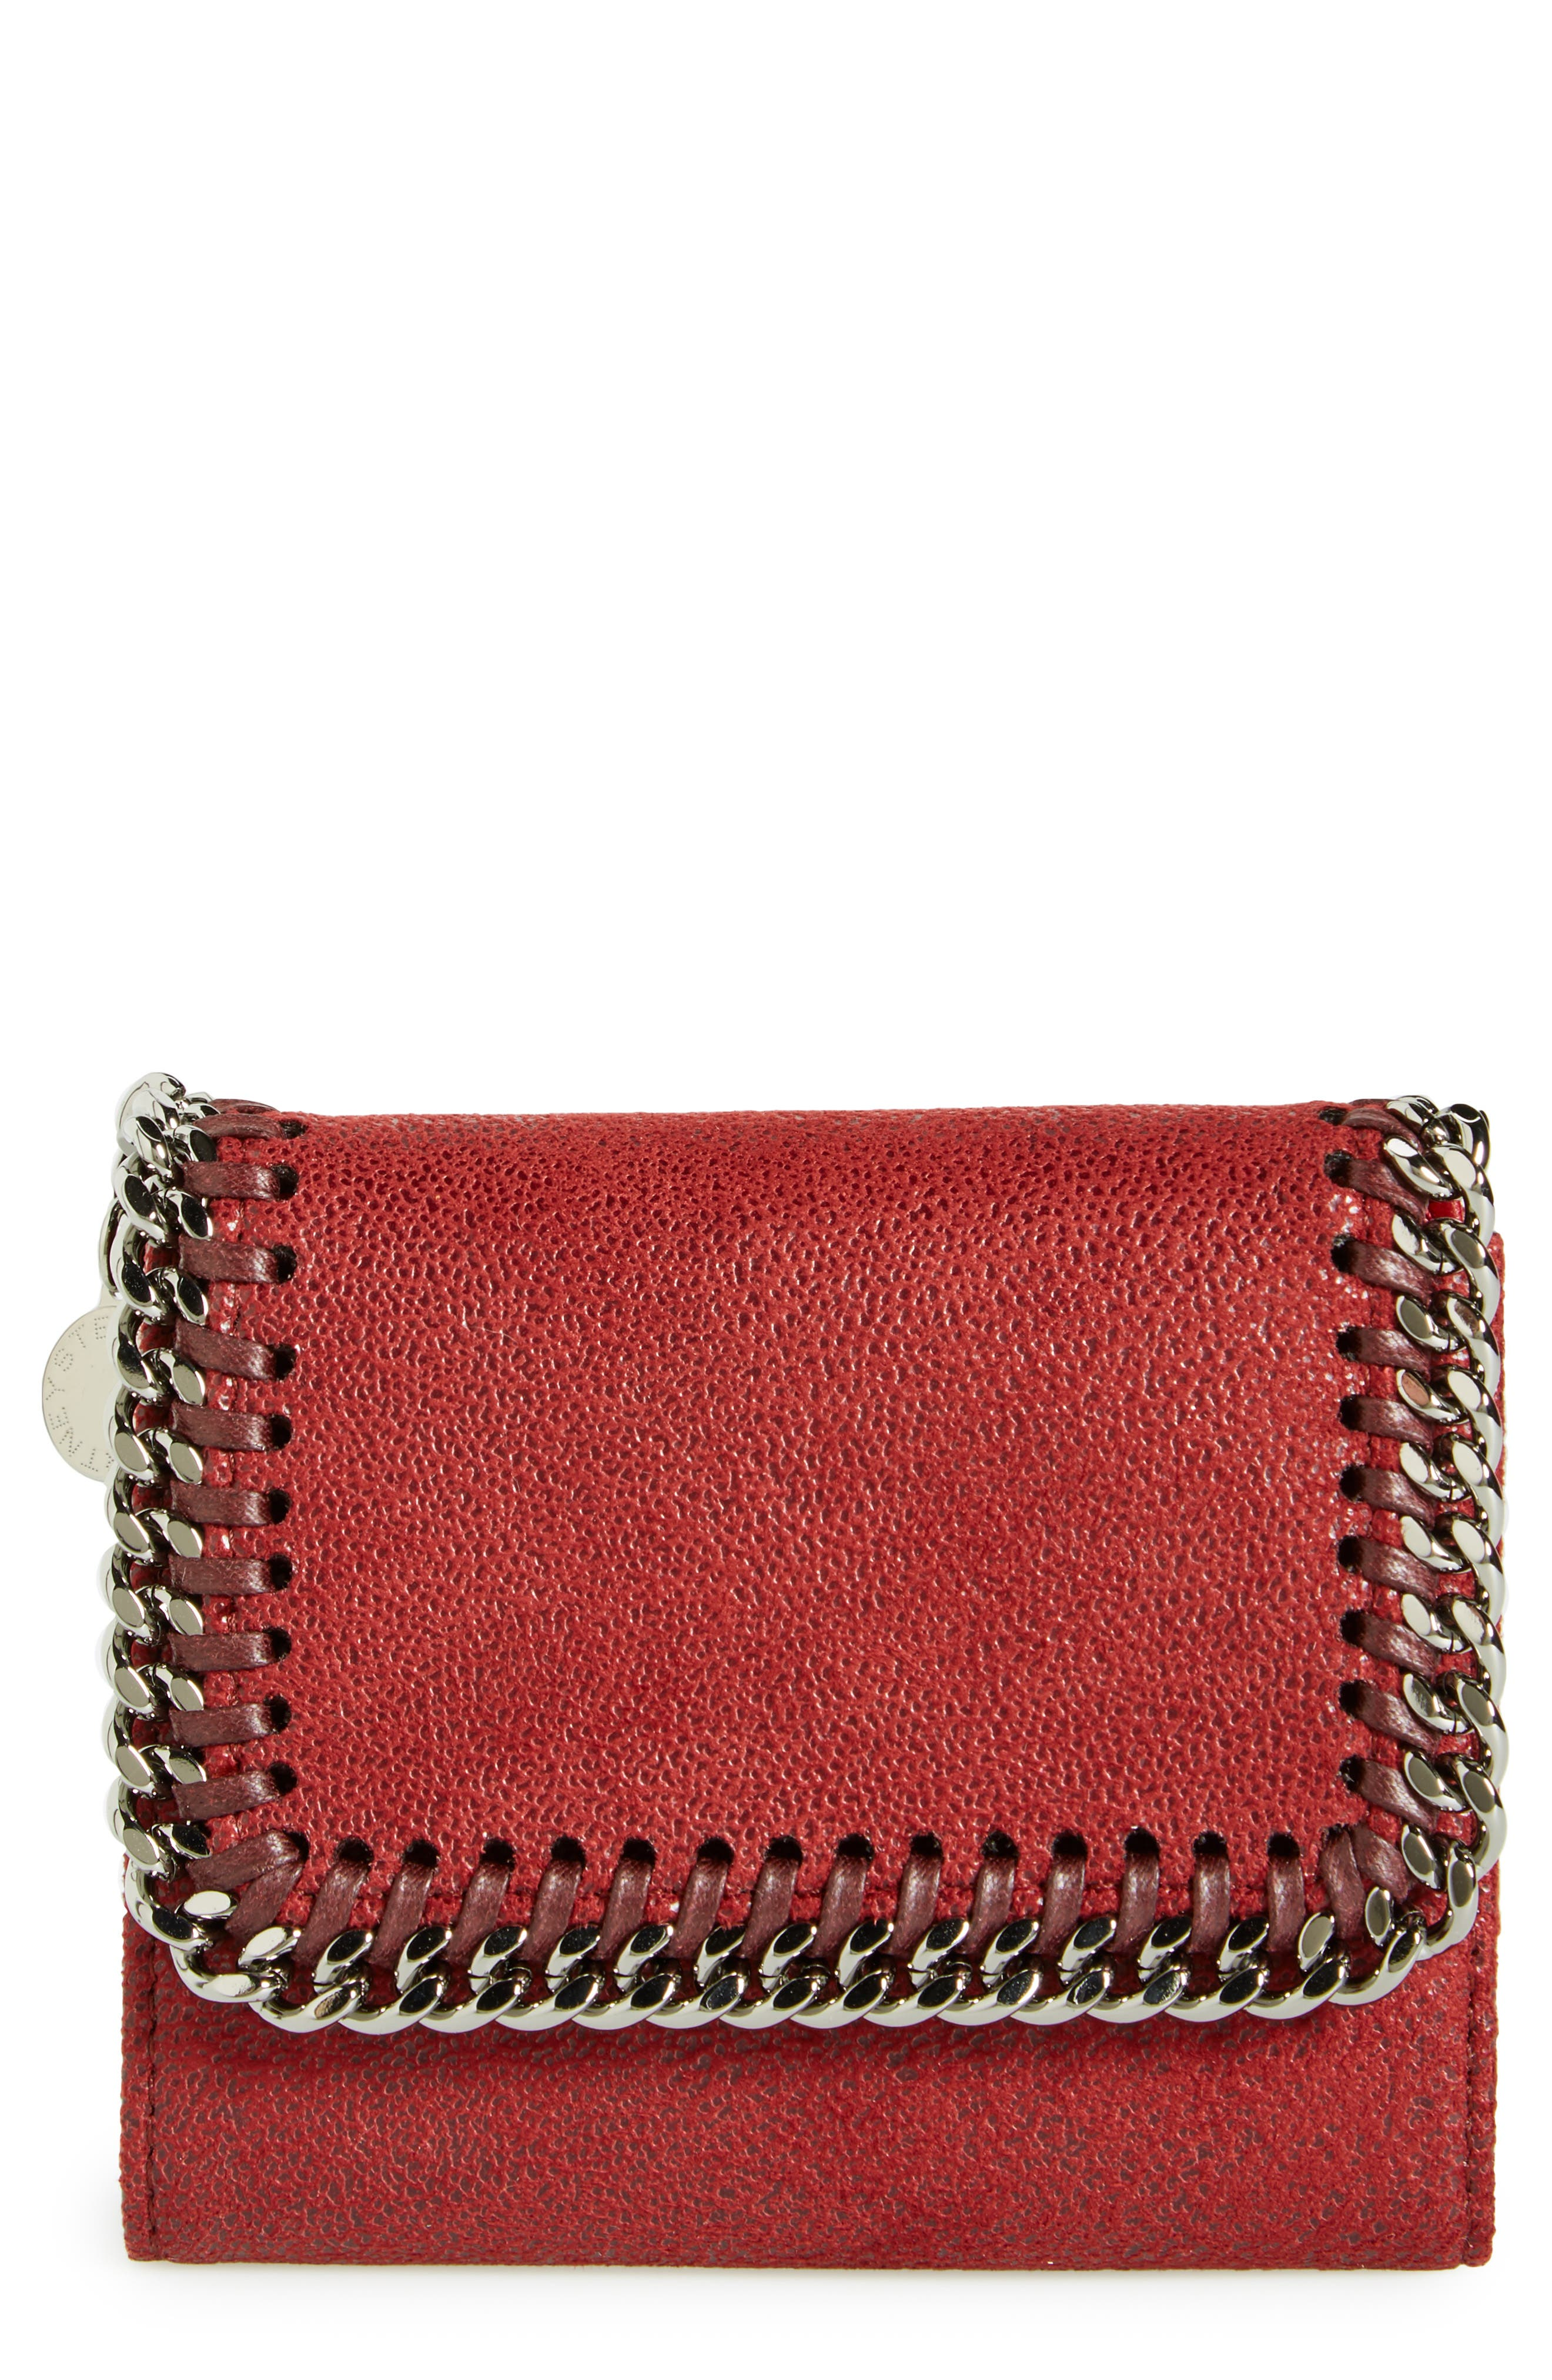 Alternate Image 1 Selected - Stella McCartney 'Small Falabella' Faux Leather French Wallet